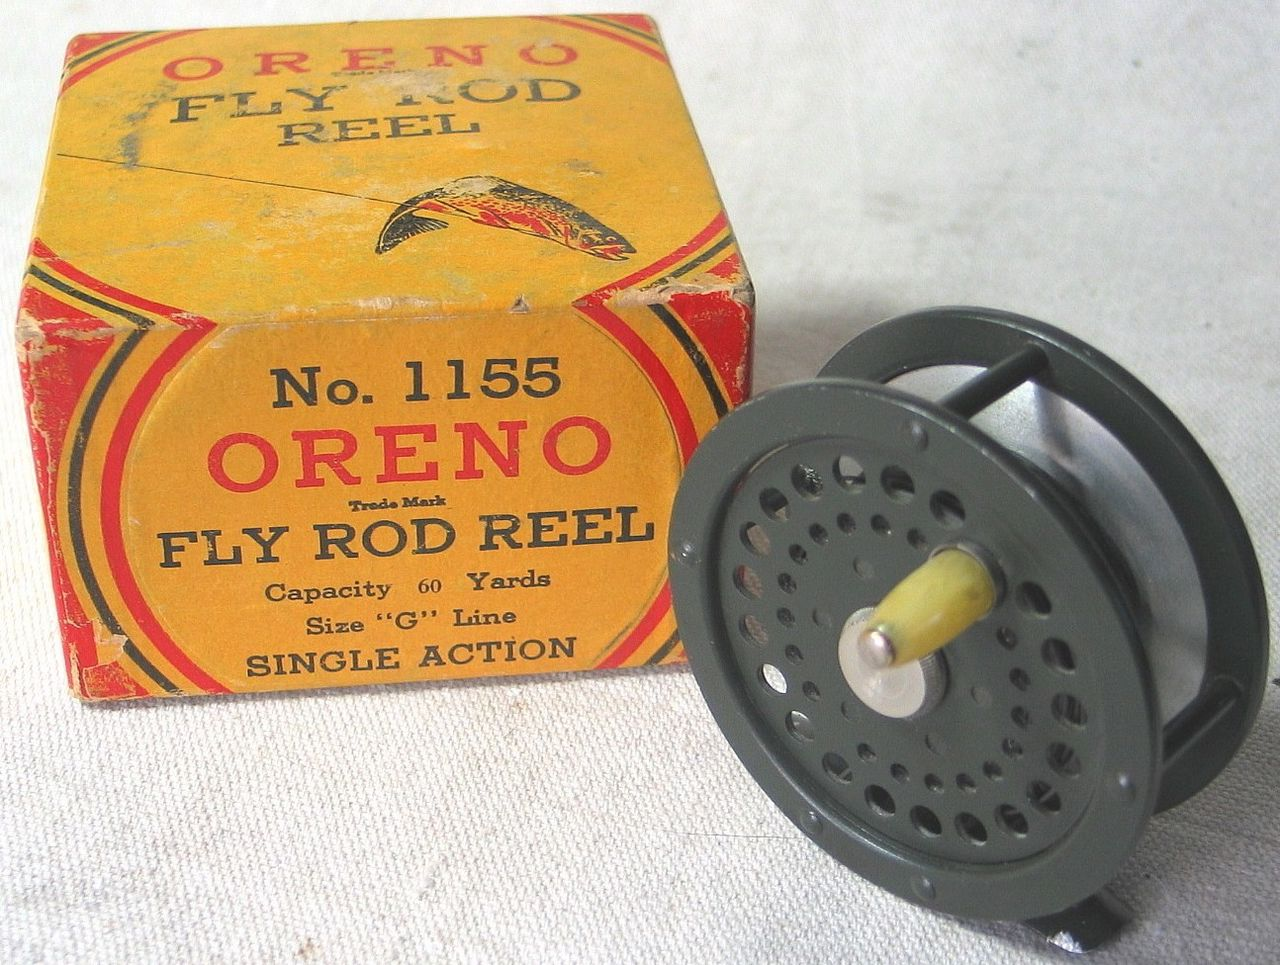 Vintage South Bend Bait Company No. 1155 Oreno Fly Rod Reel